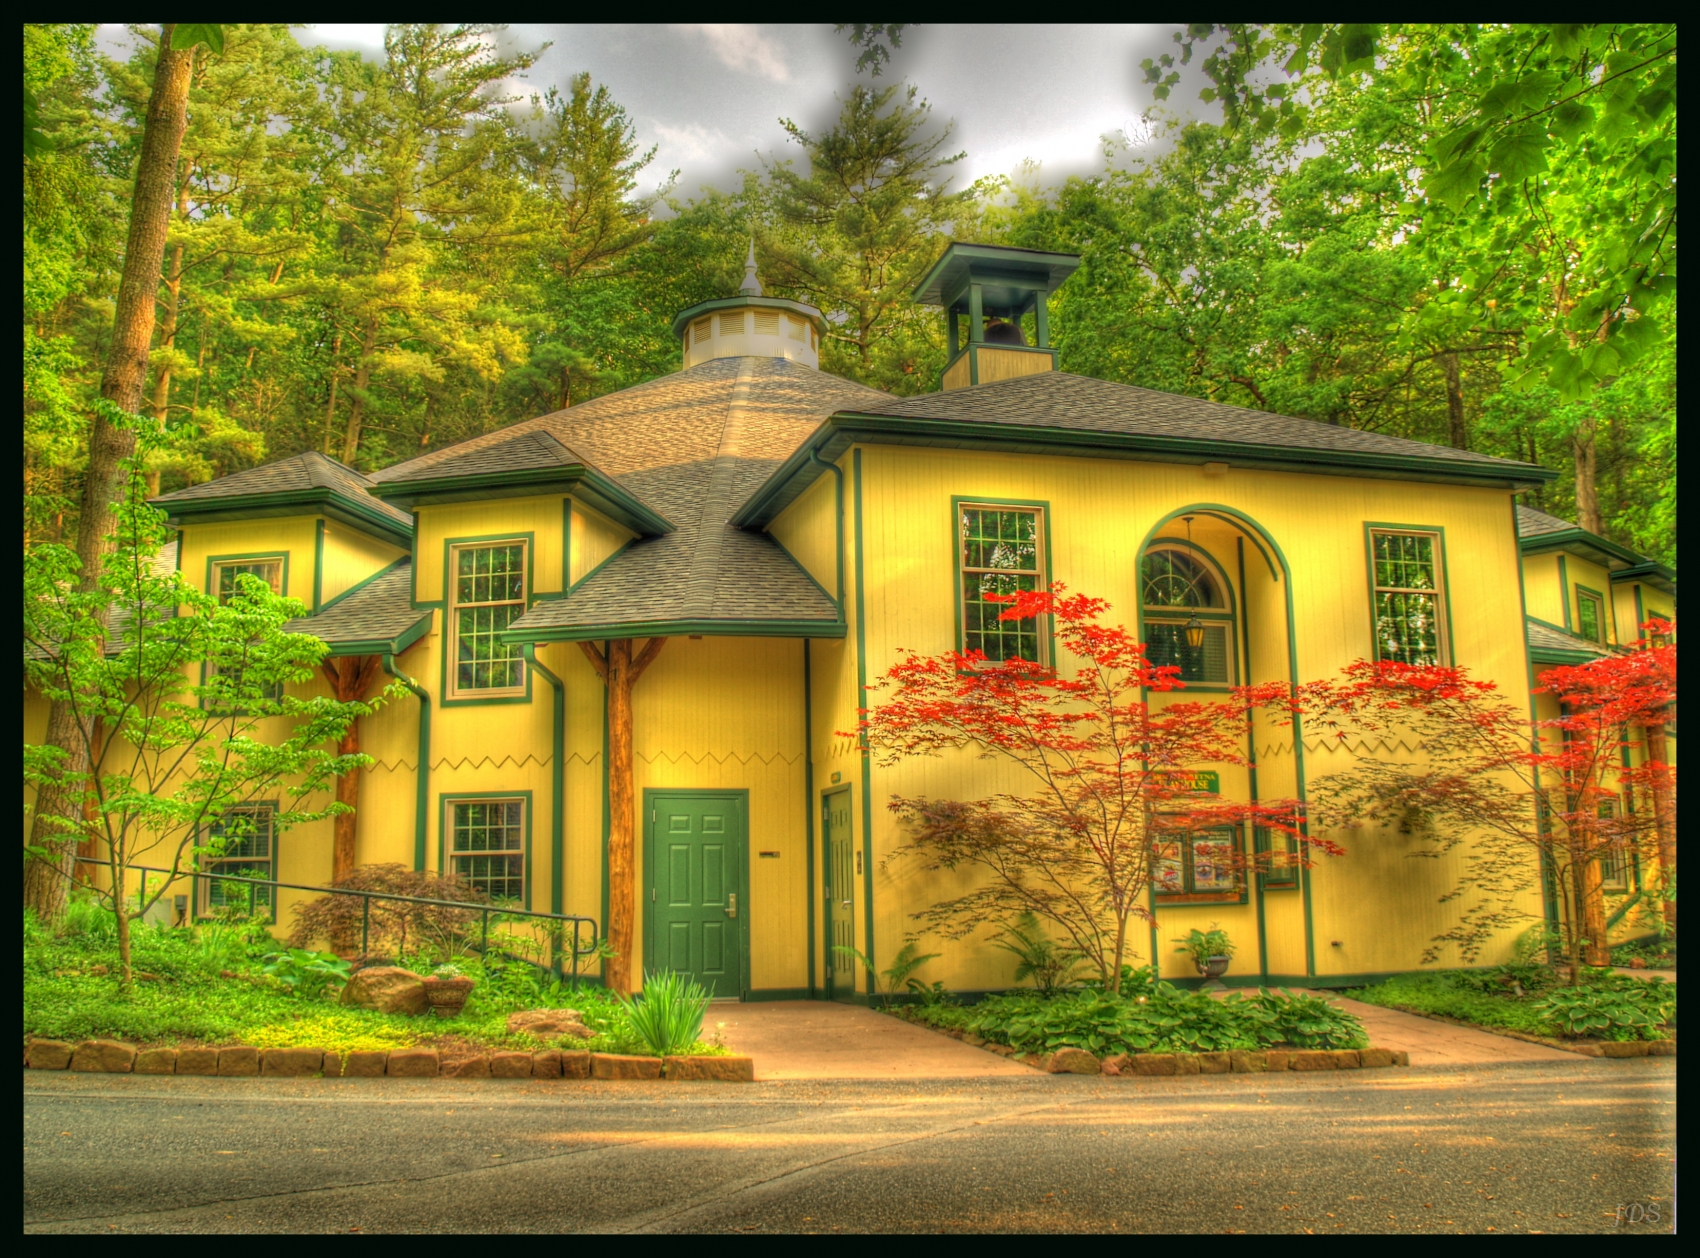 The Playhouse Mt. Gretna, PA